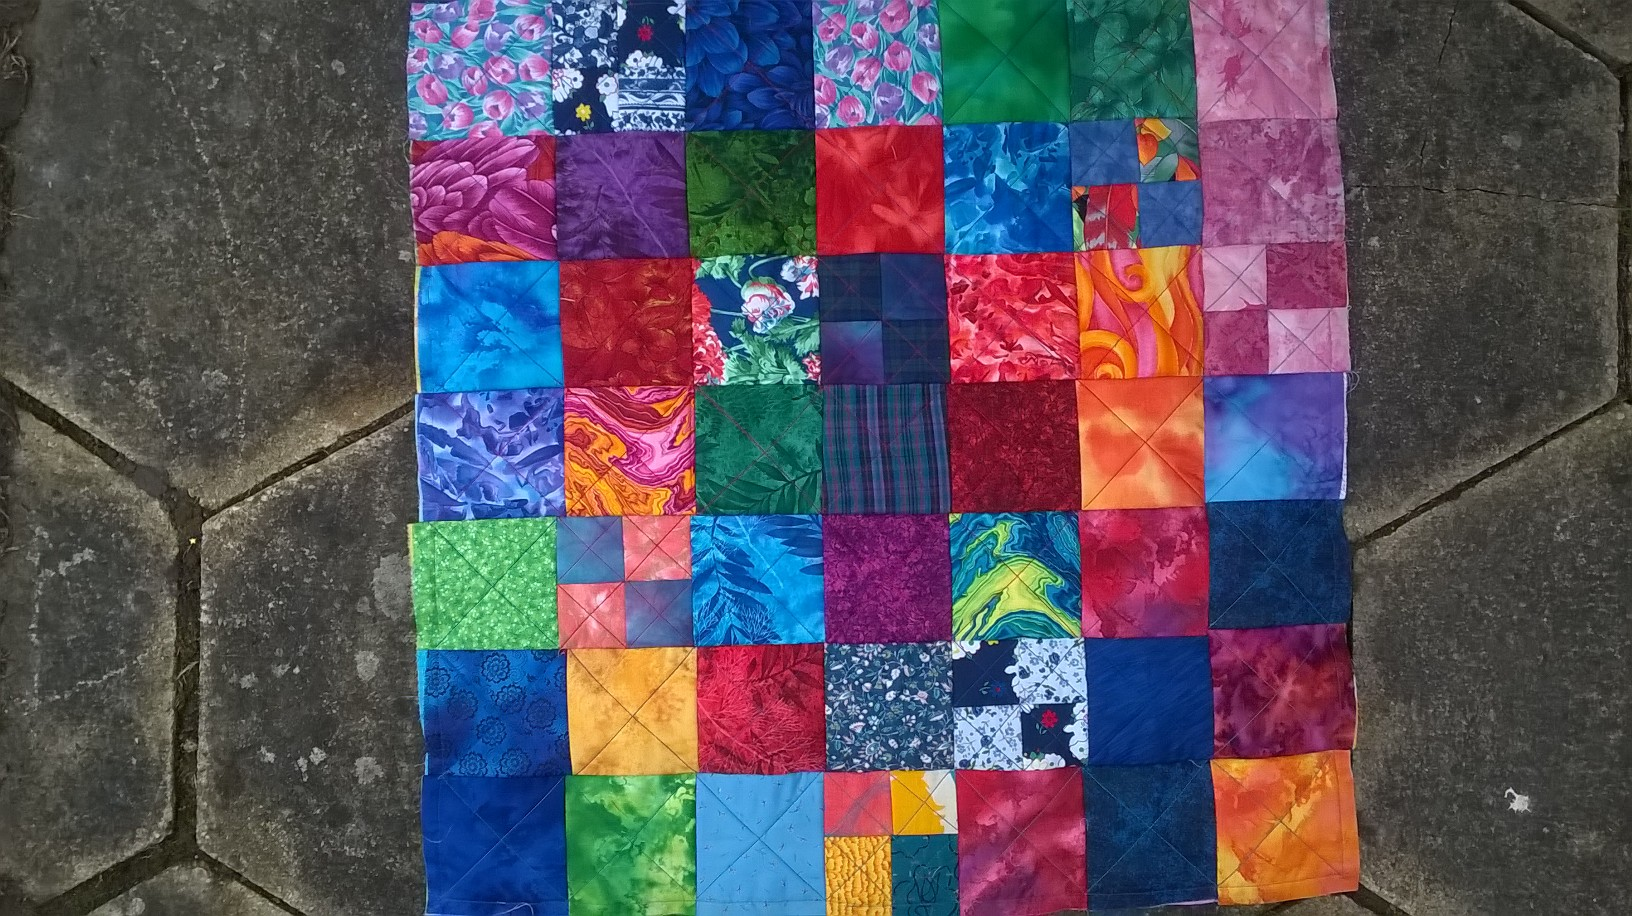 Patchwork & Quilting course with Niki Chandler at Cambridge Art Makers